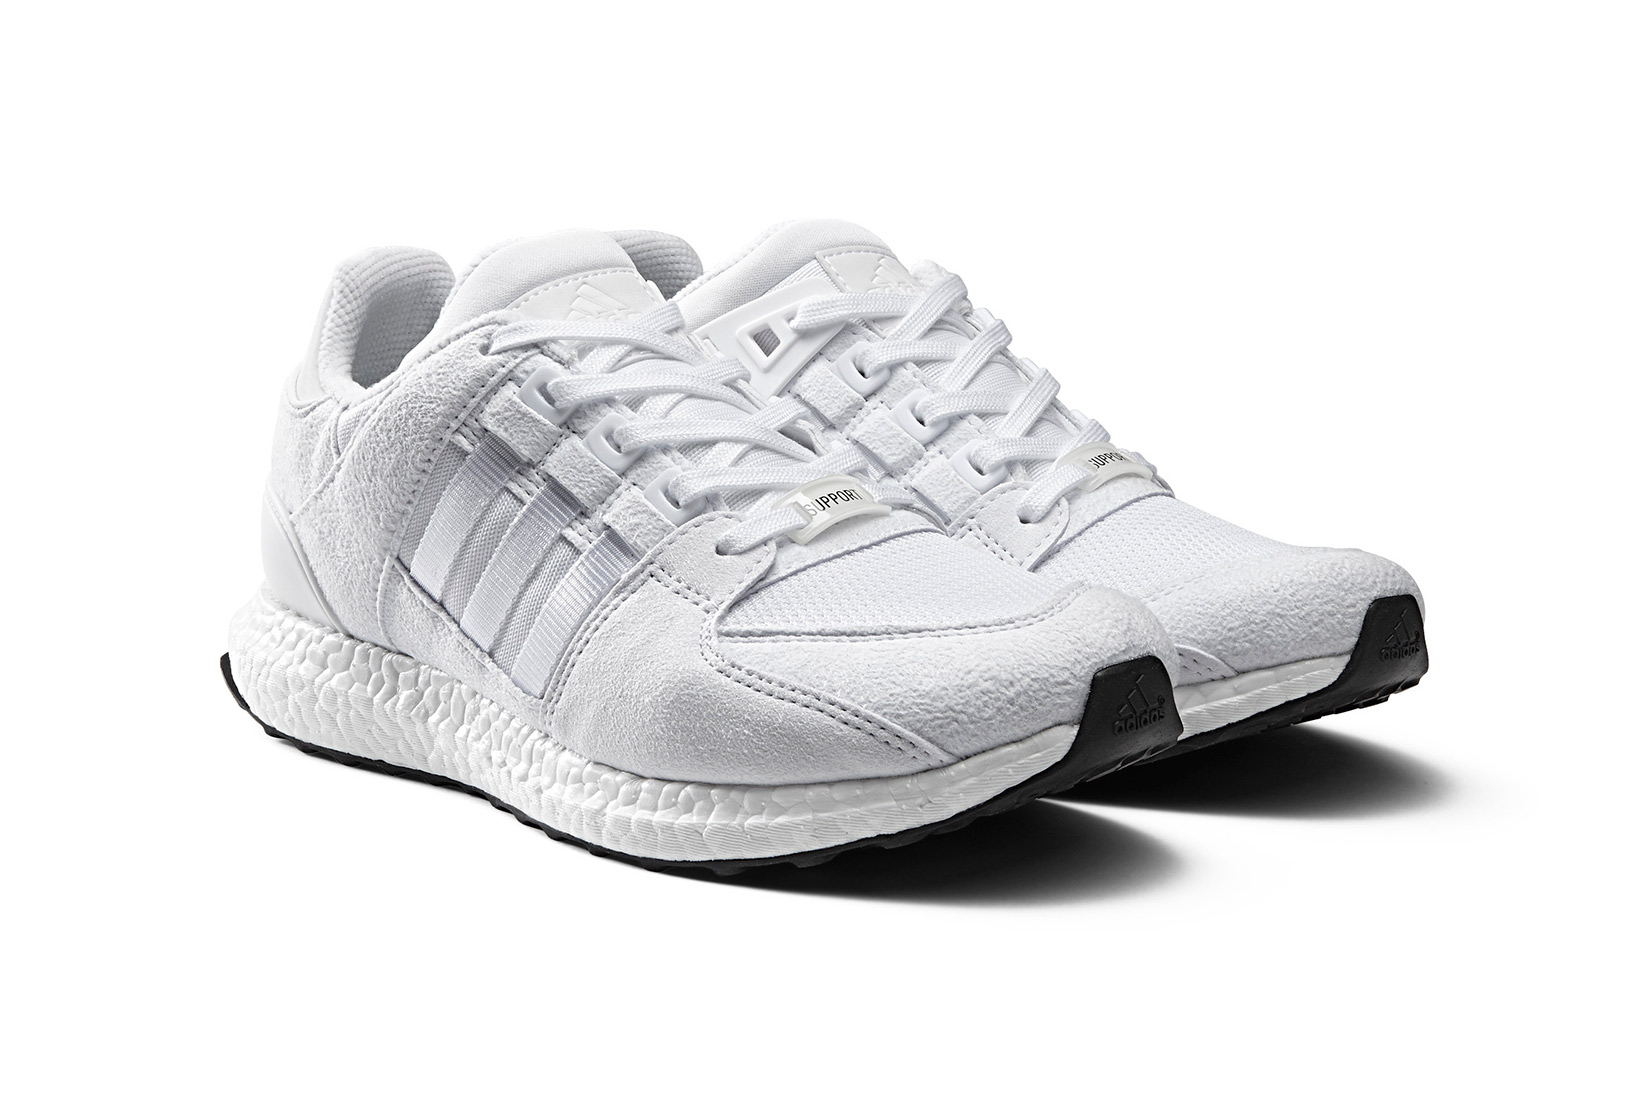 Adidas Originals Eqt Boost